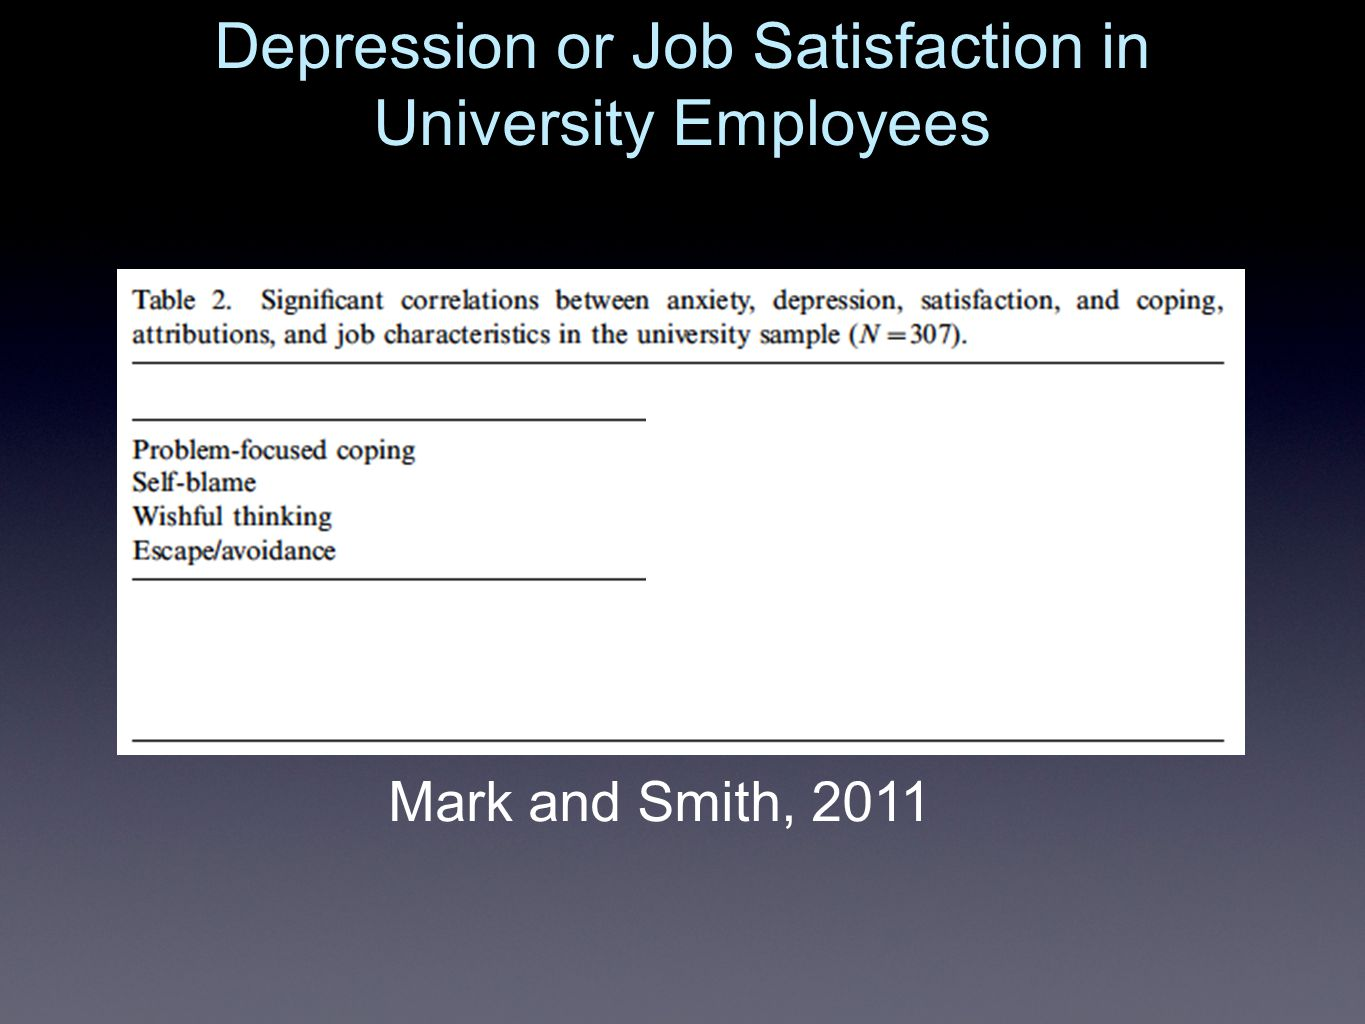 Mark and Smith, 2011 Depression or Job Satisfaction in University Employees